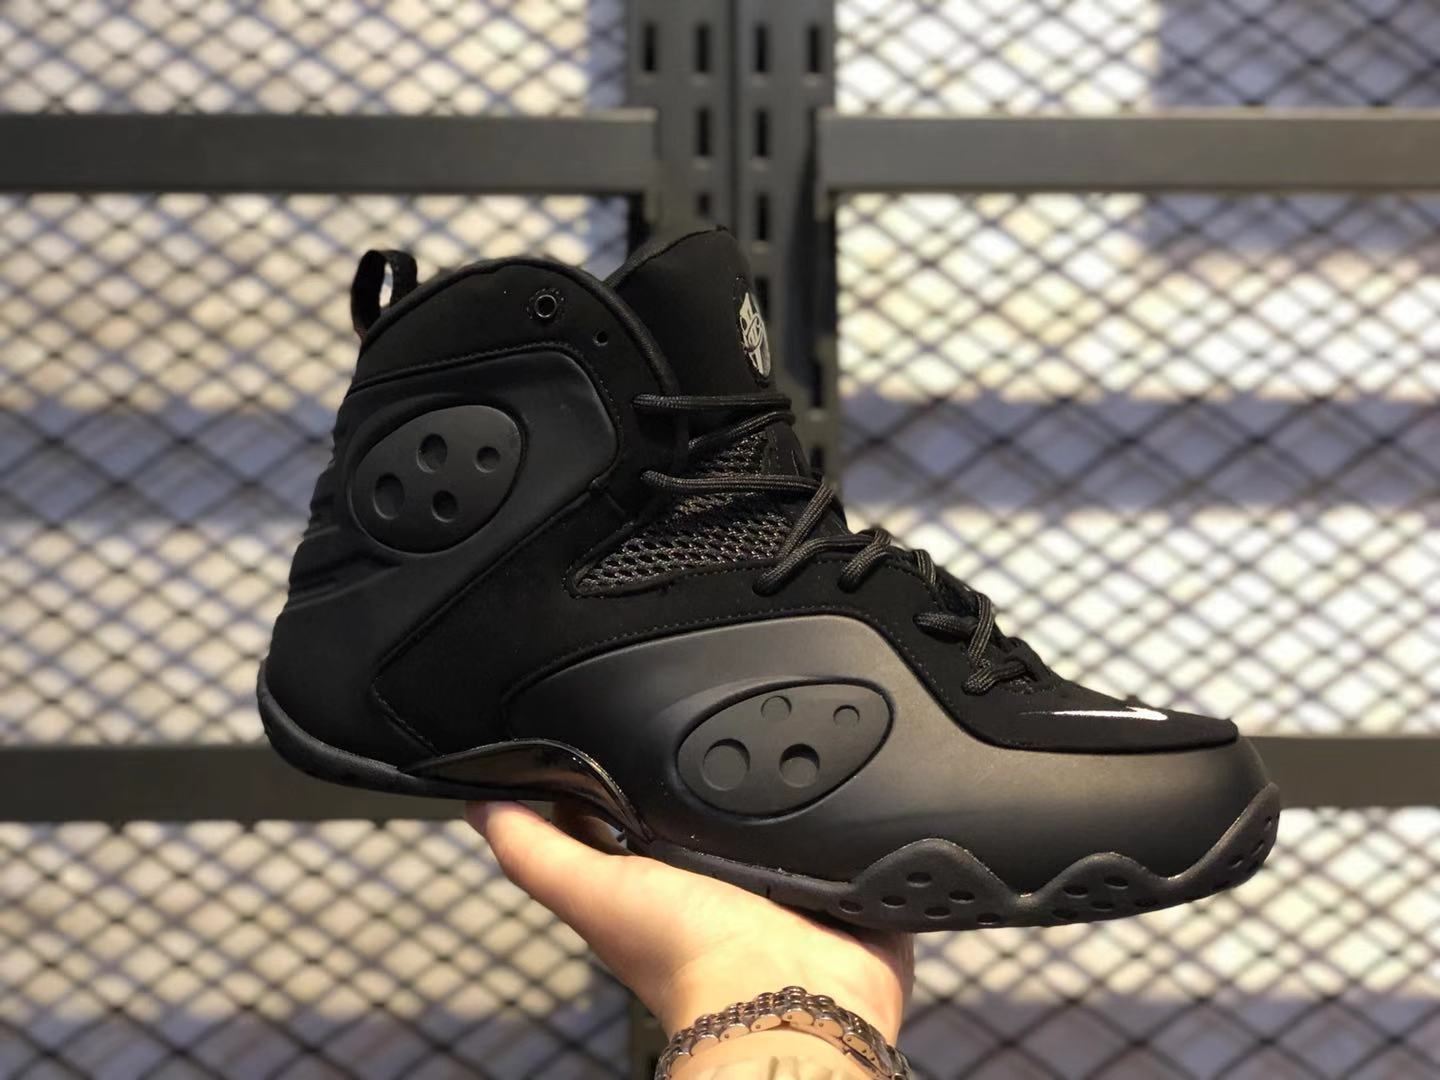 Nike Zoom Rookie Black/White-University Red Basketball Shoes Online Sale